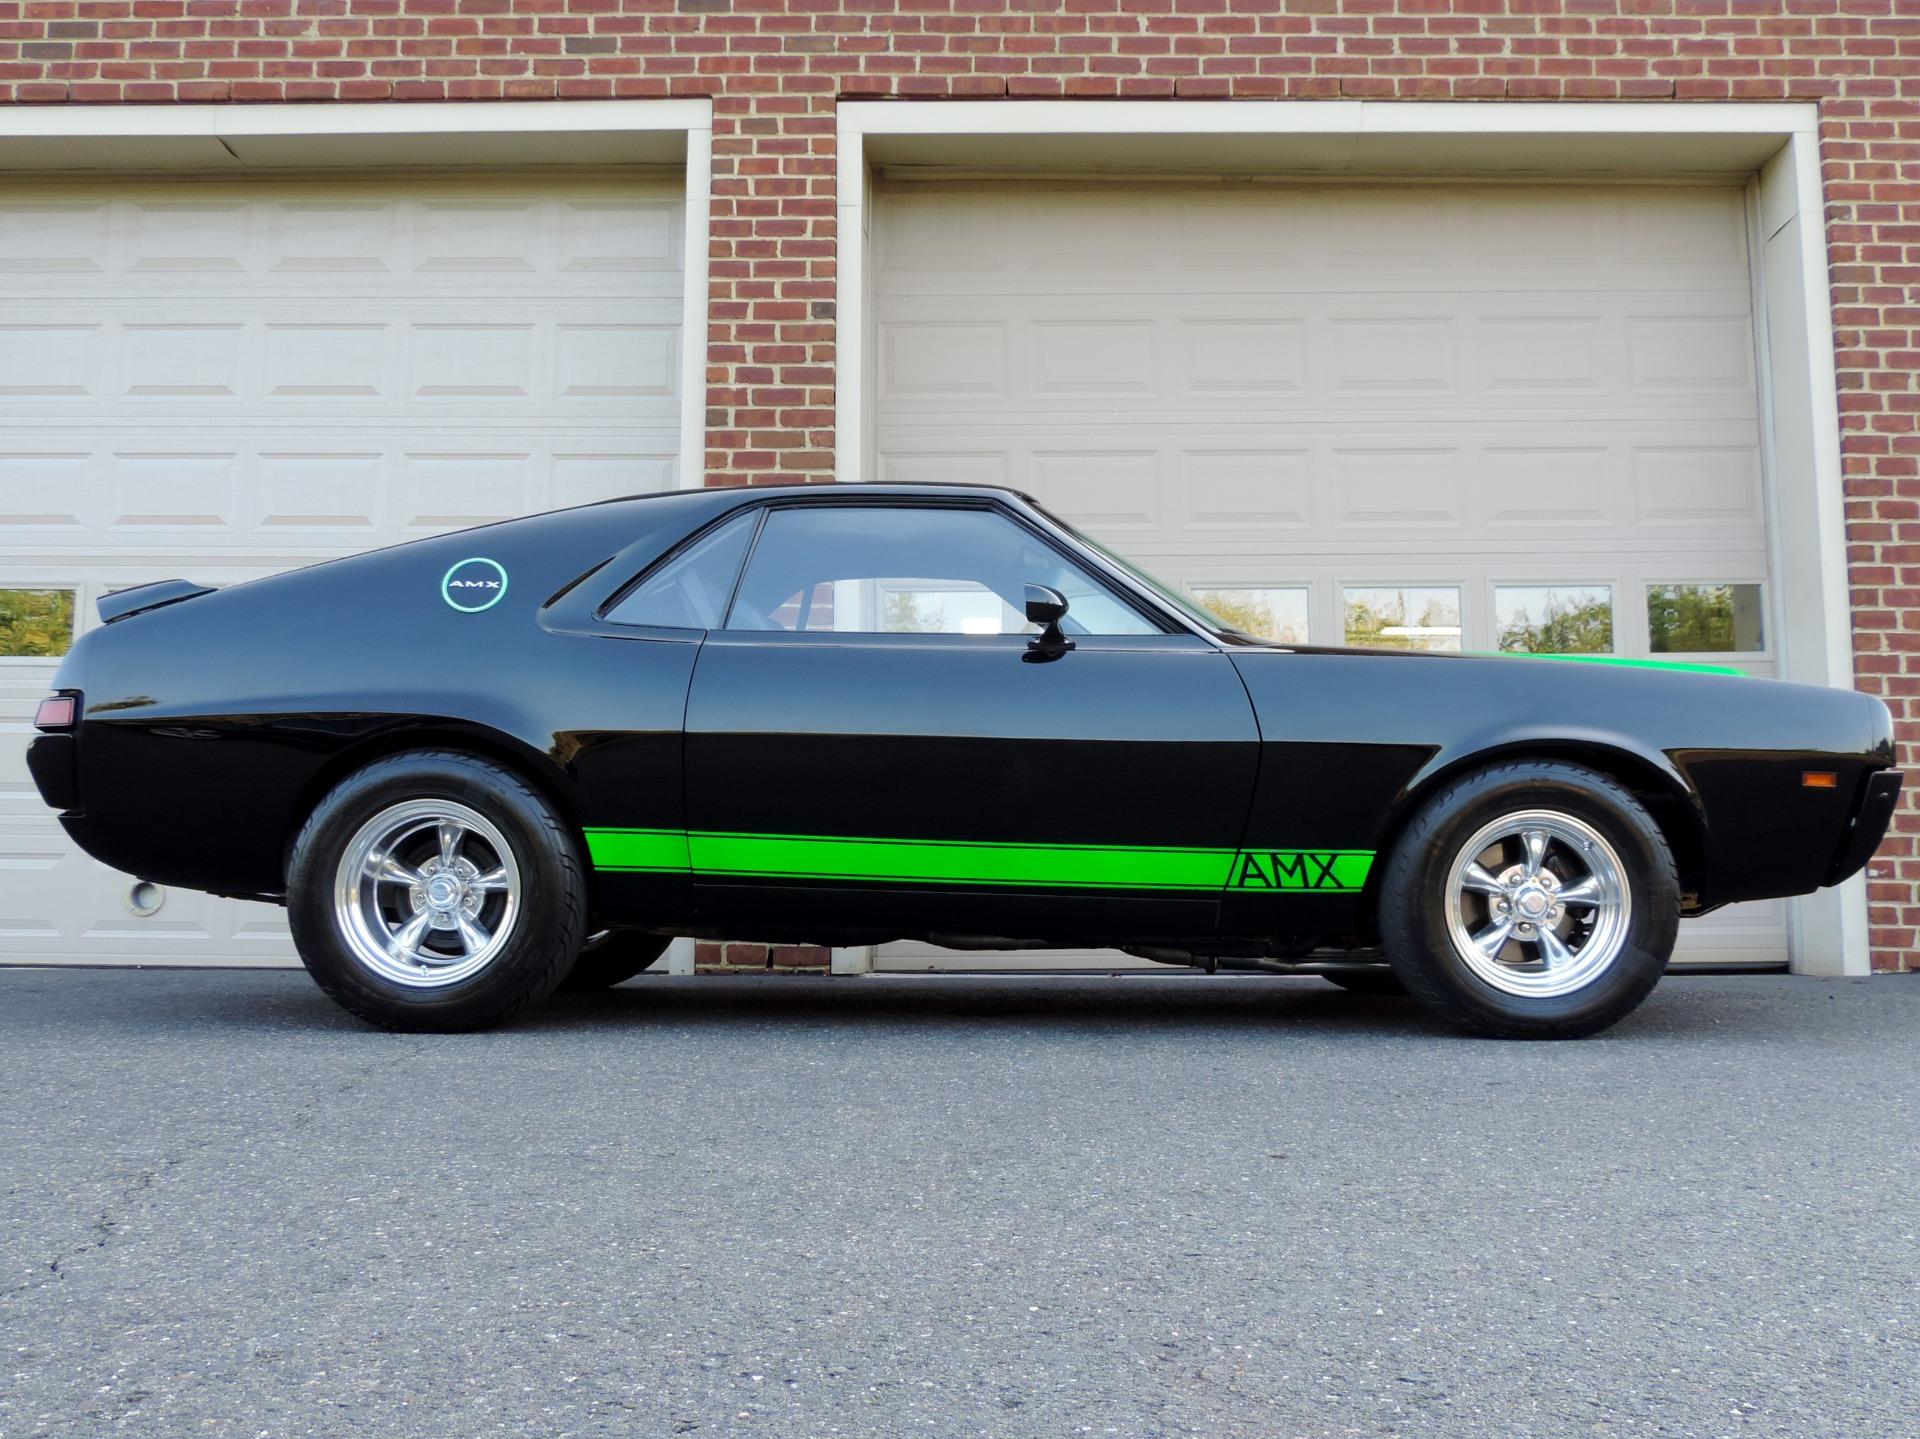 Used-1968-American-Motors-AMX-Custom-Coupe